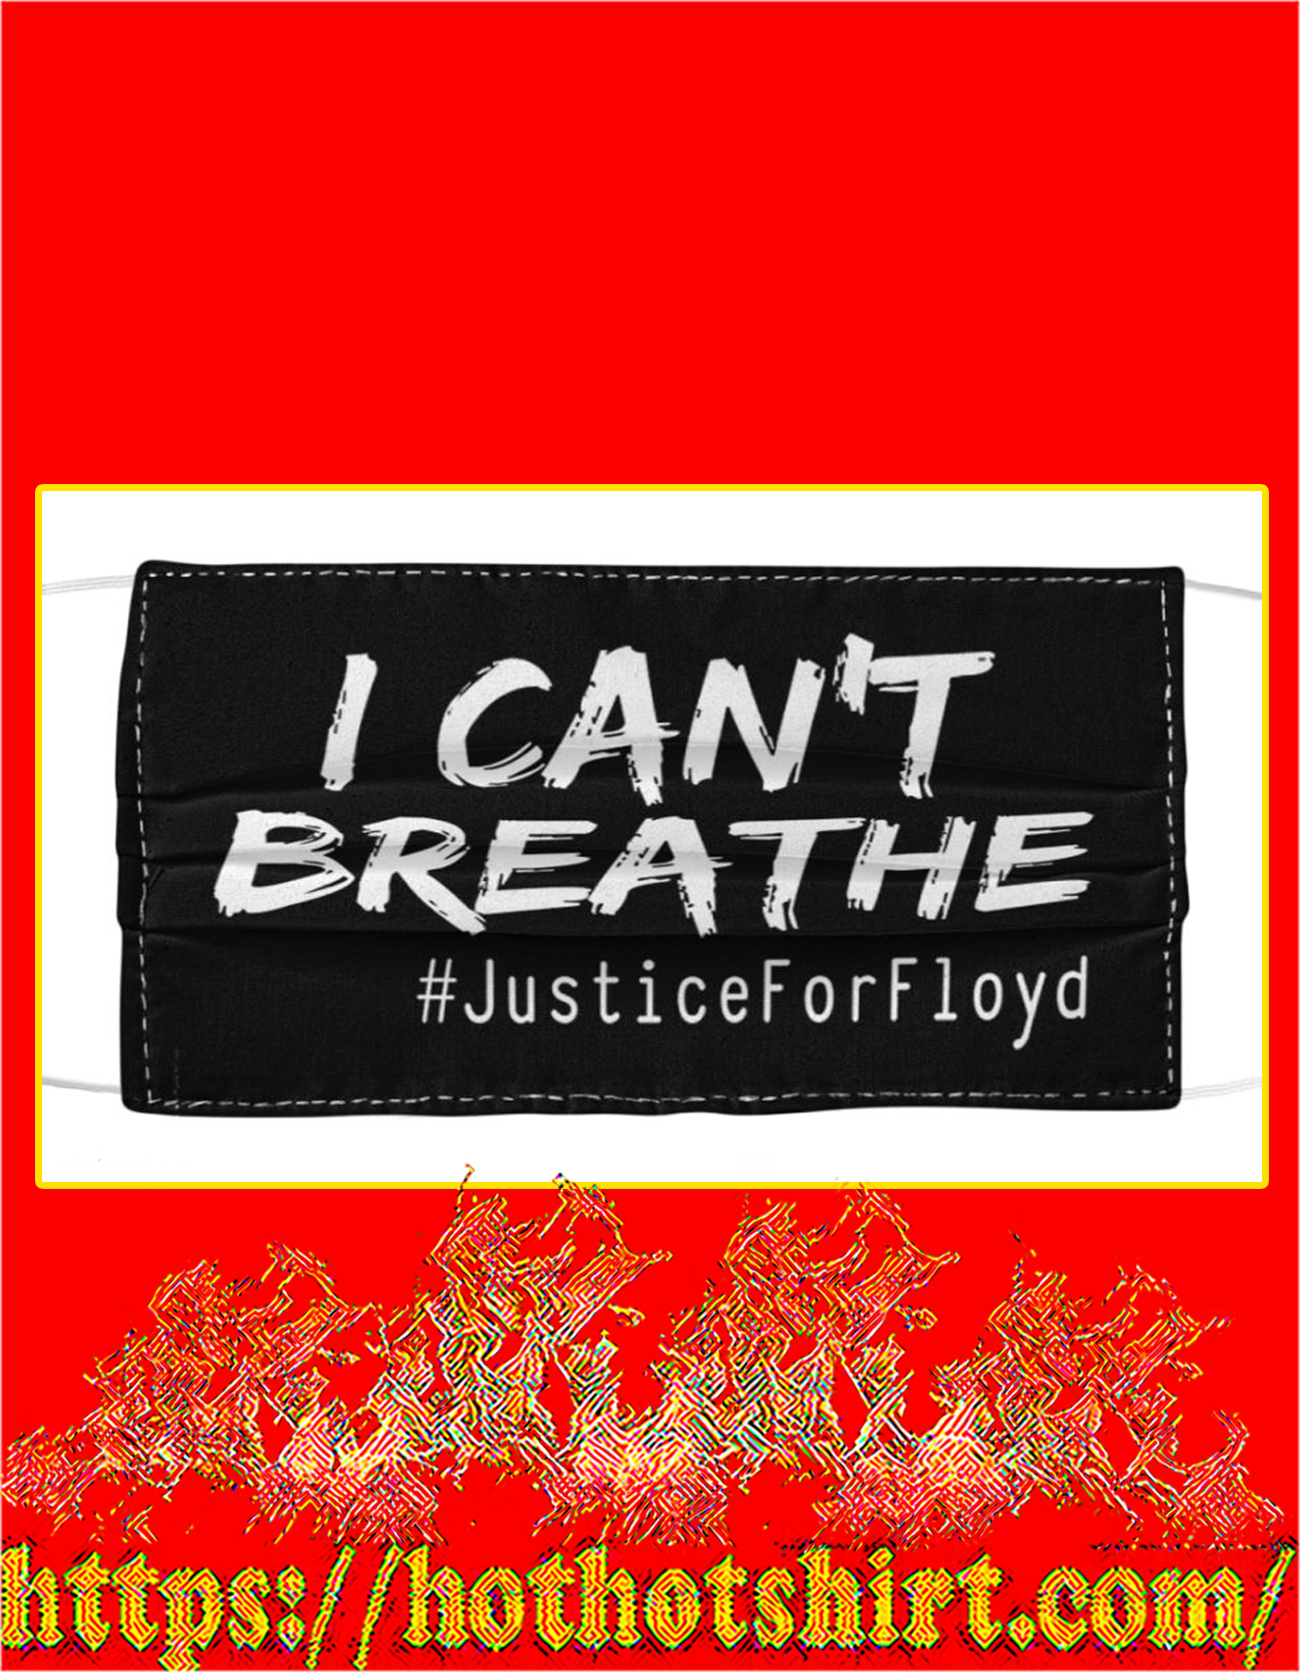 I can't breathe justice for floyd face mask - detail